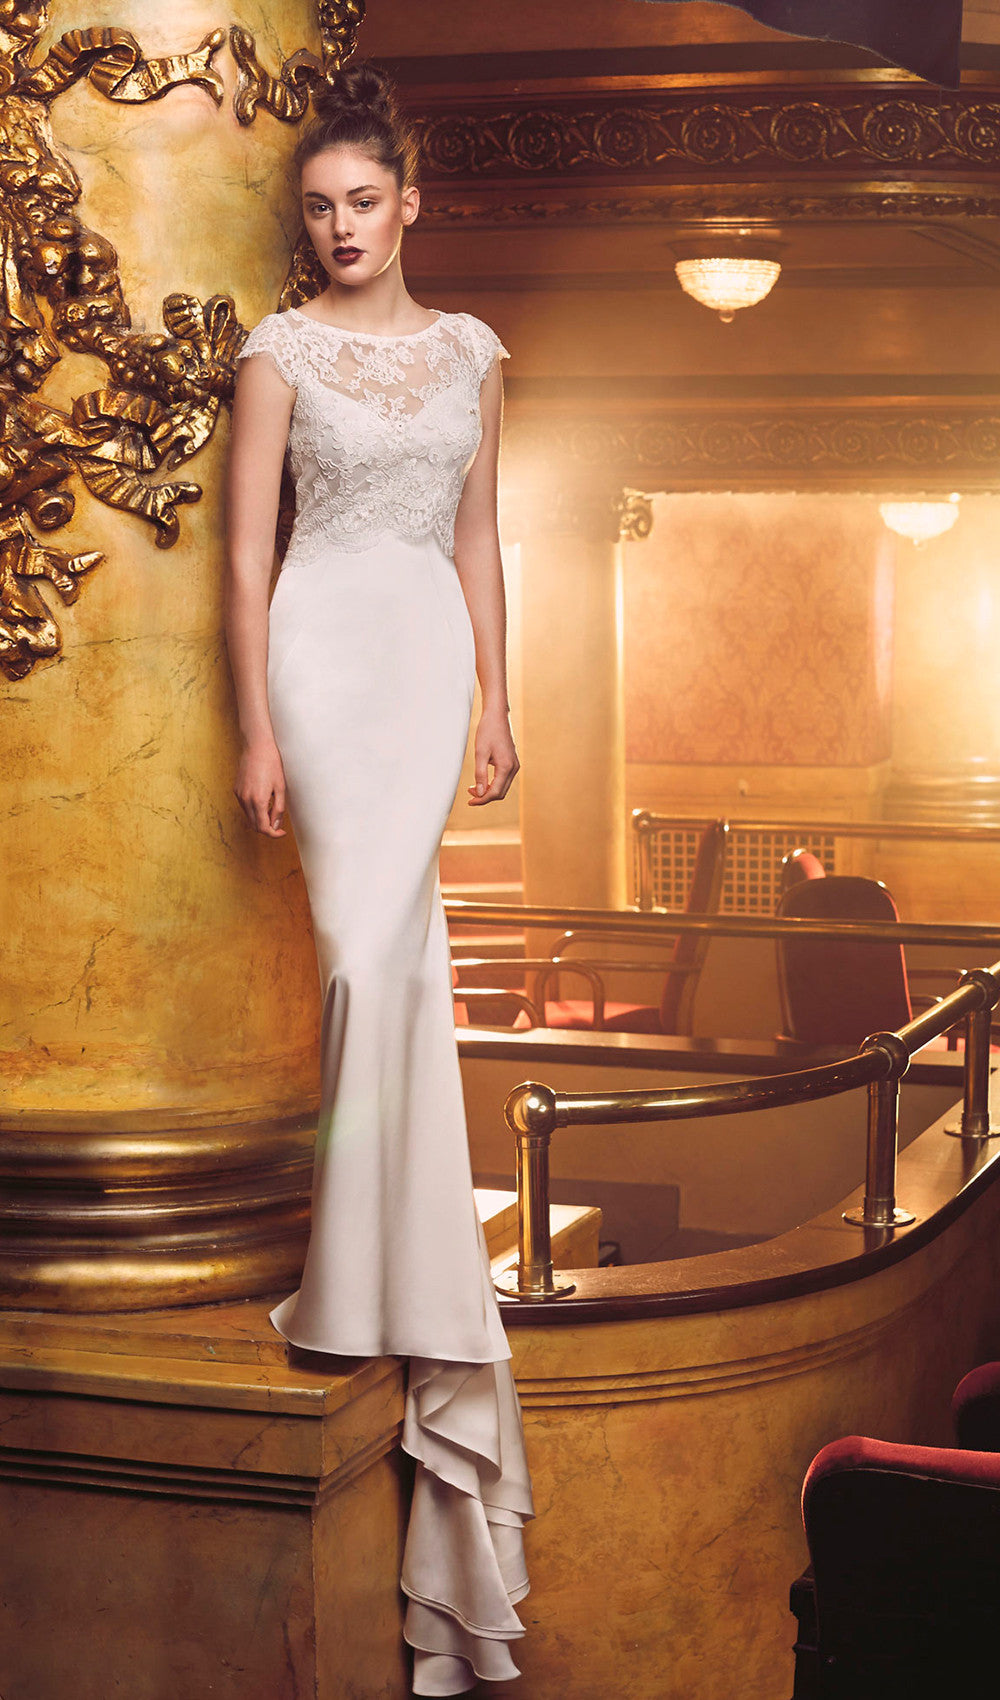 Paloma Blanca - STYLE 4709 | Schaffer's Bridal in Des Moines, Iowa and Scottsdale, Arizona